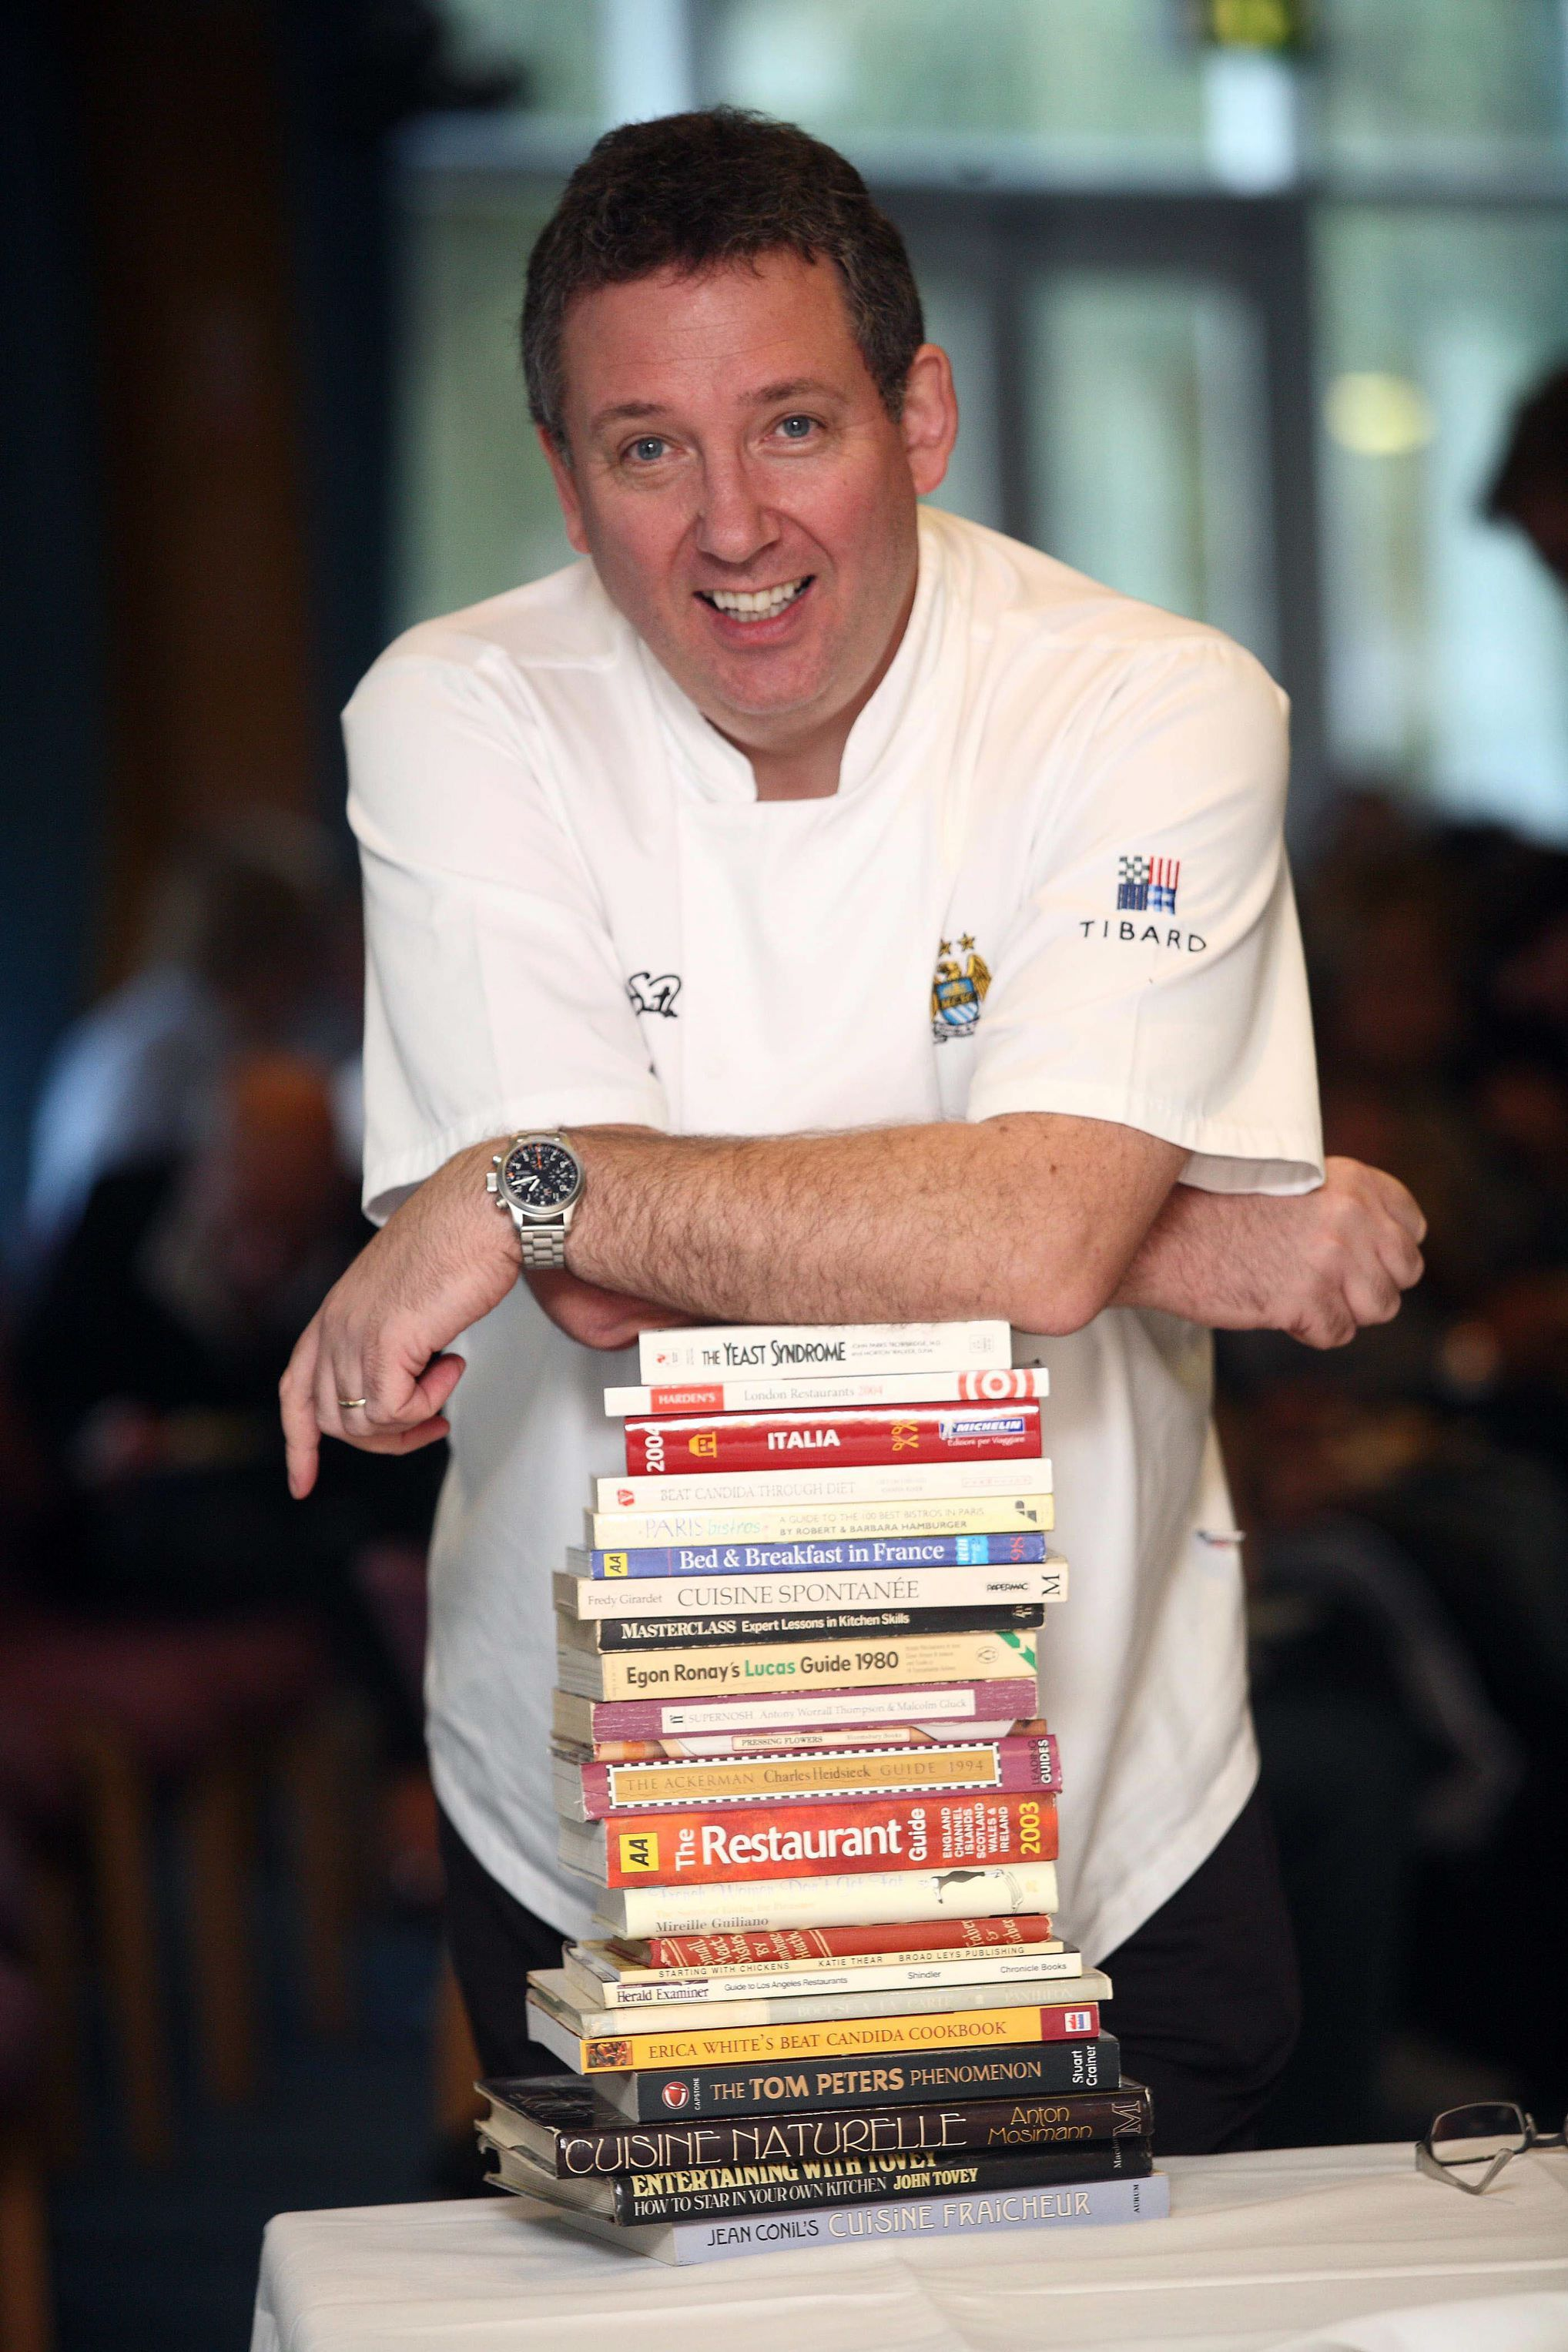 Chef Leans On His Learnings Www Benson Smith Co Uk Chef Chef Knife Cookery